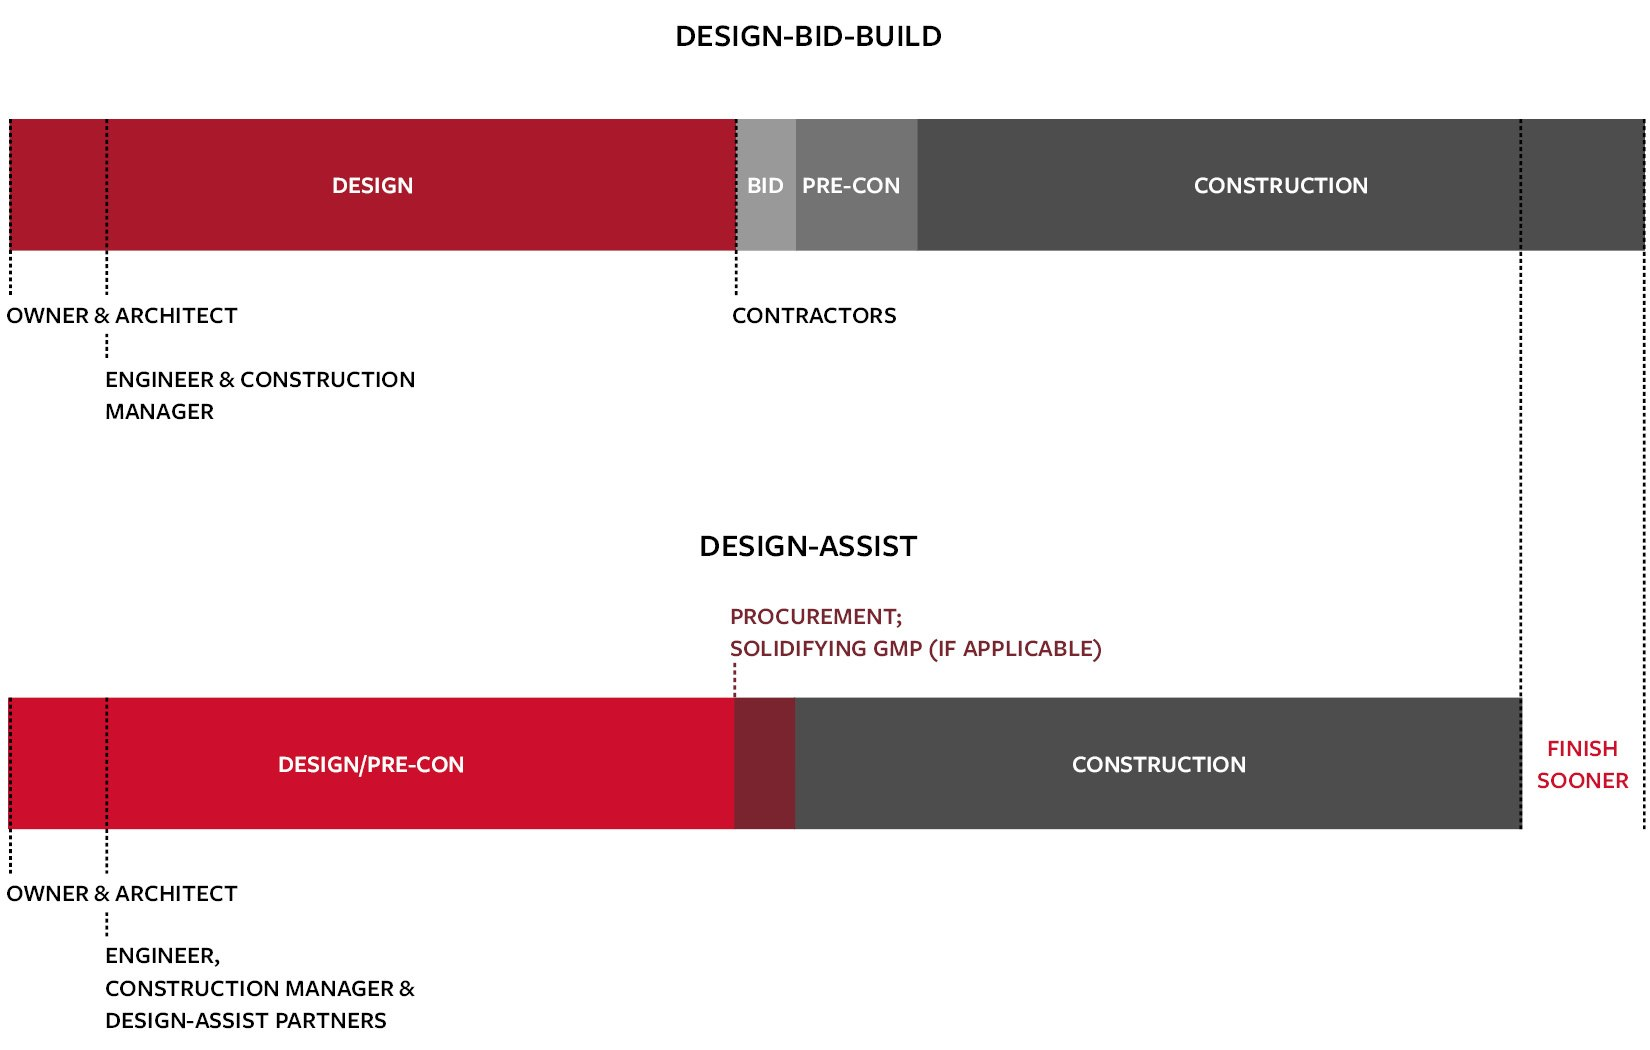 Design-bid-build vs design-assist